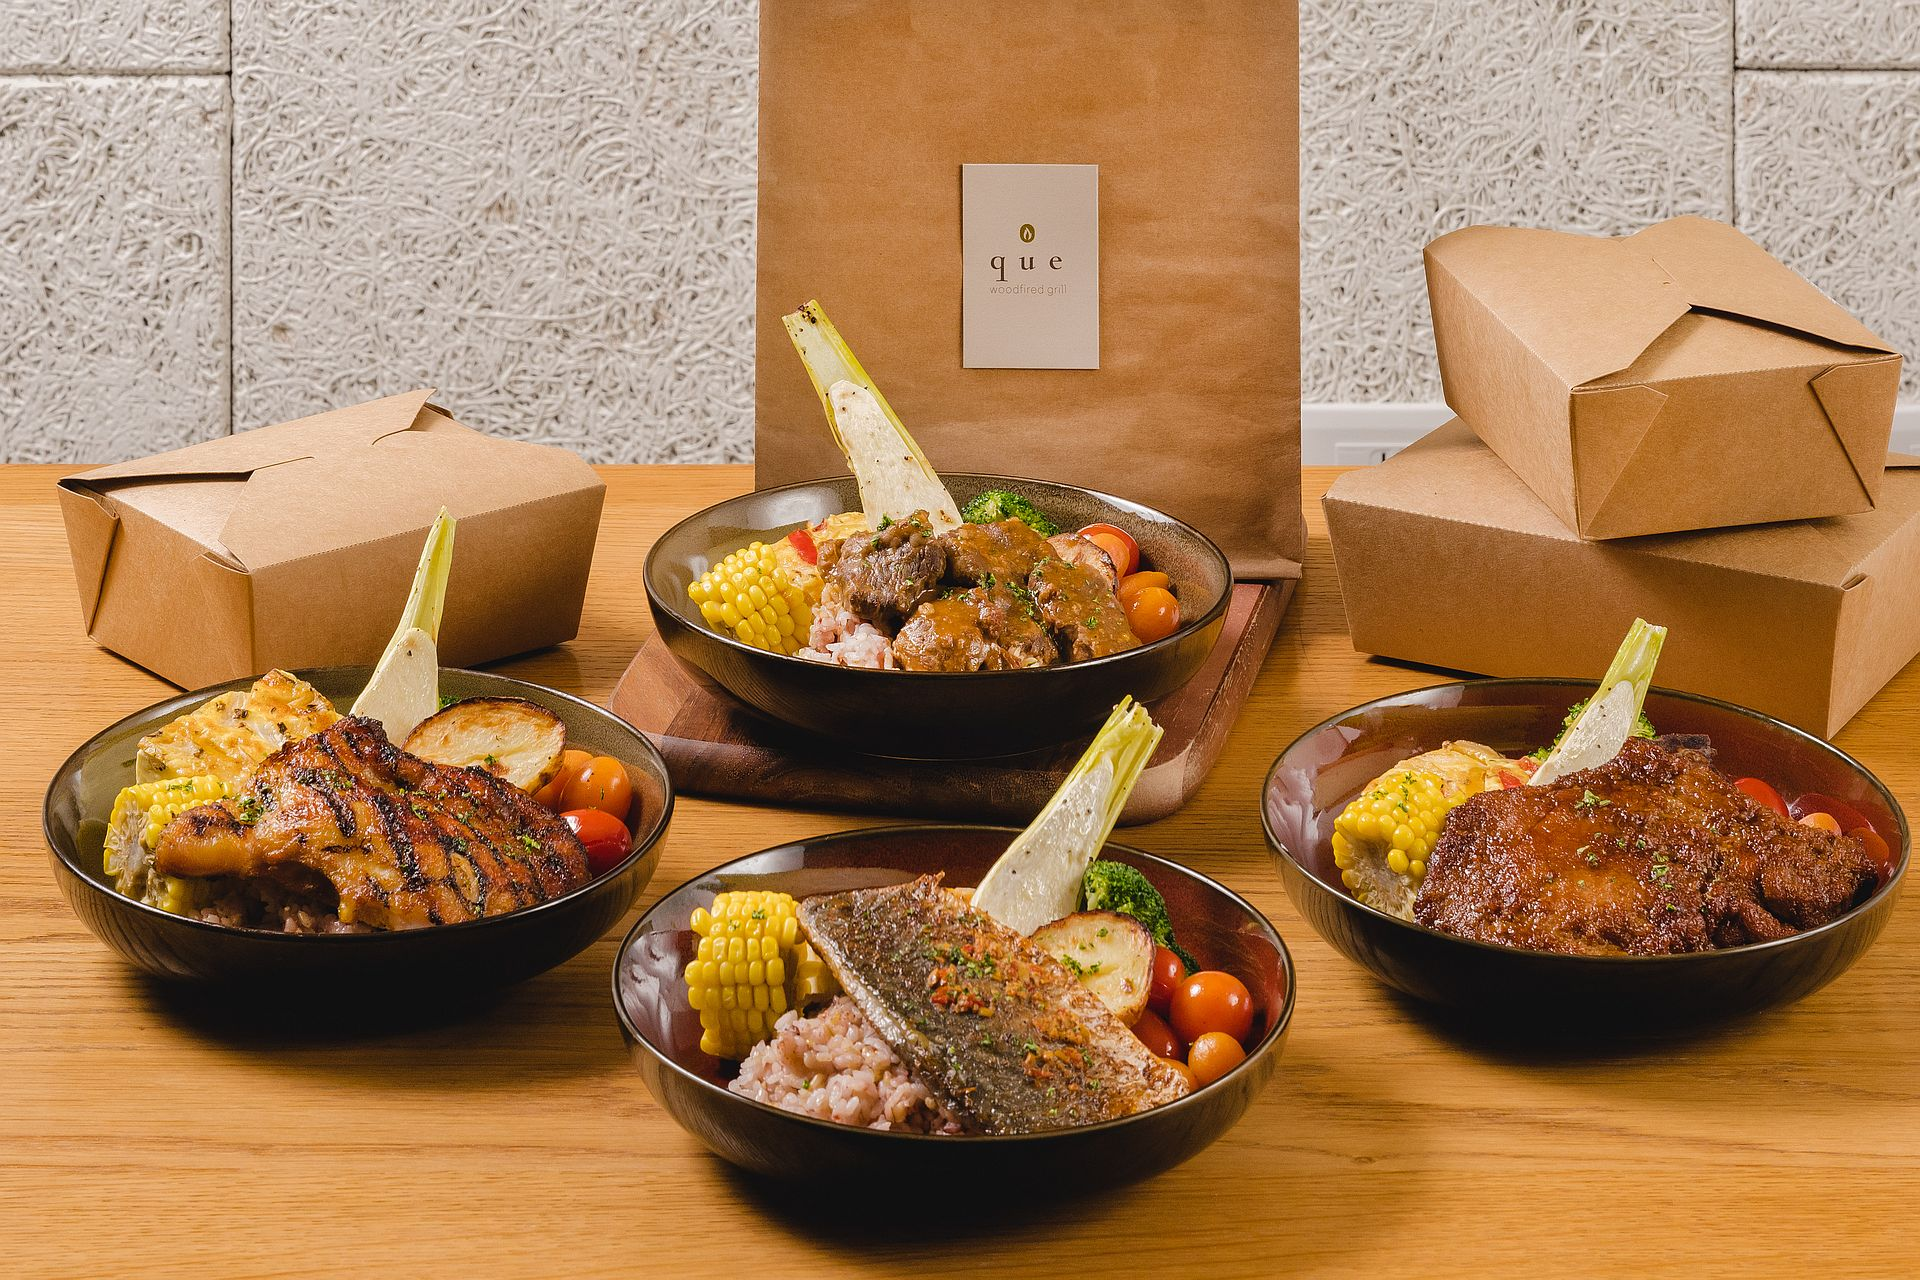 amba Taipei Songshan hotel Que restaurant super value bento boxes takeout free delivery and food delivery service